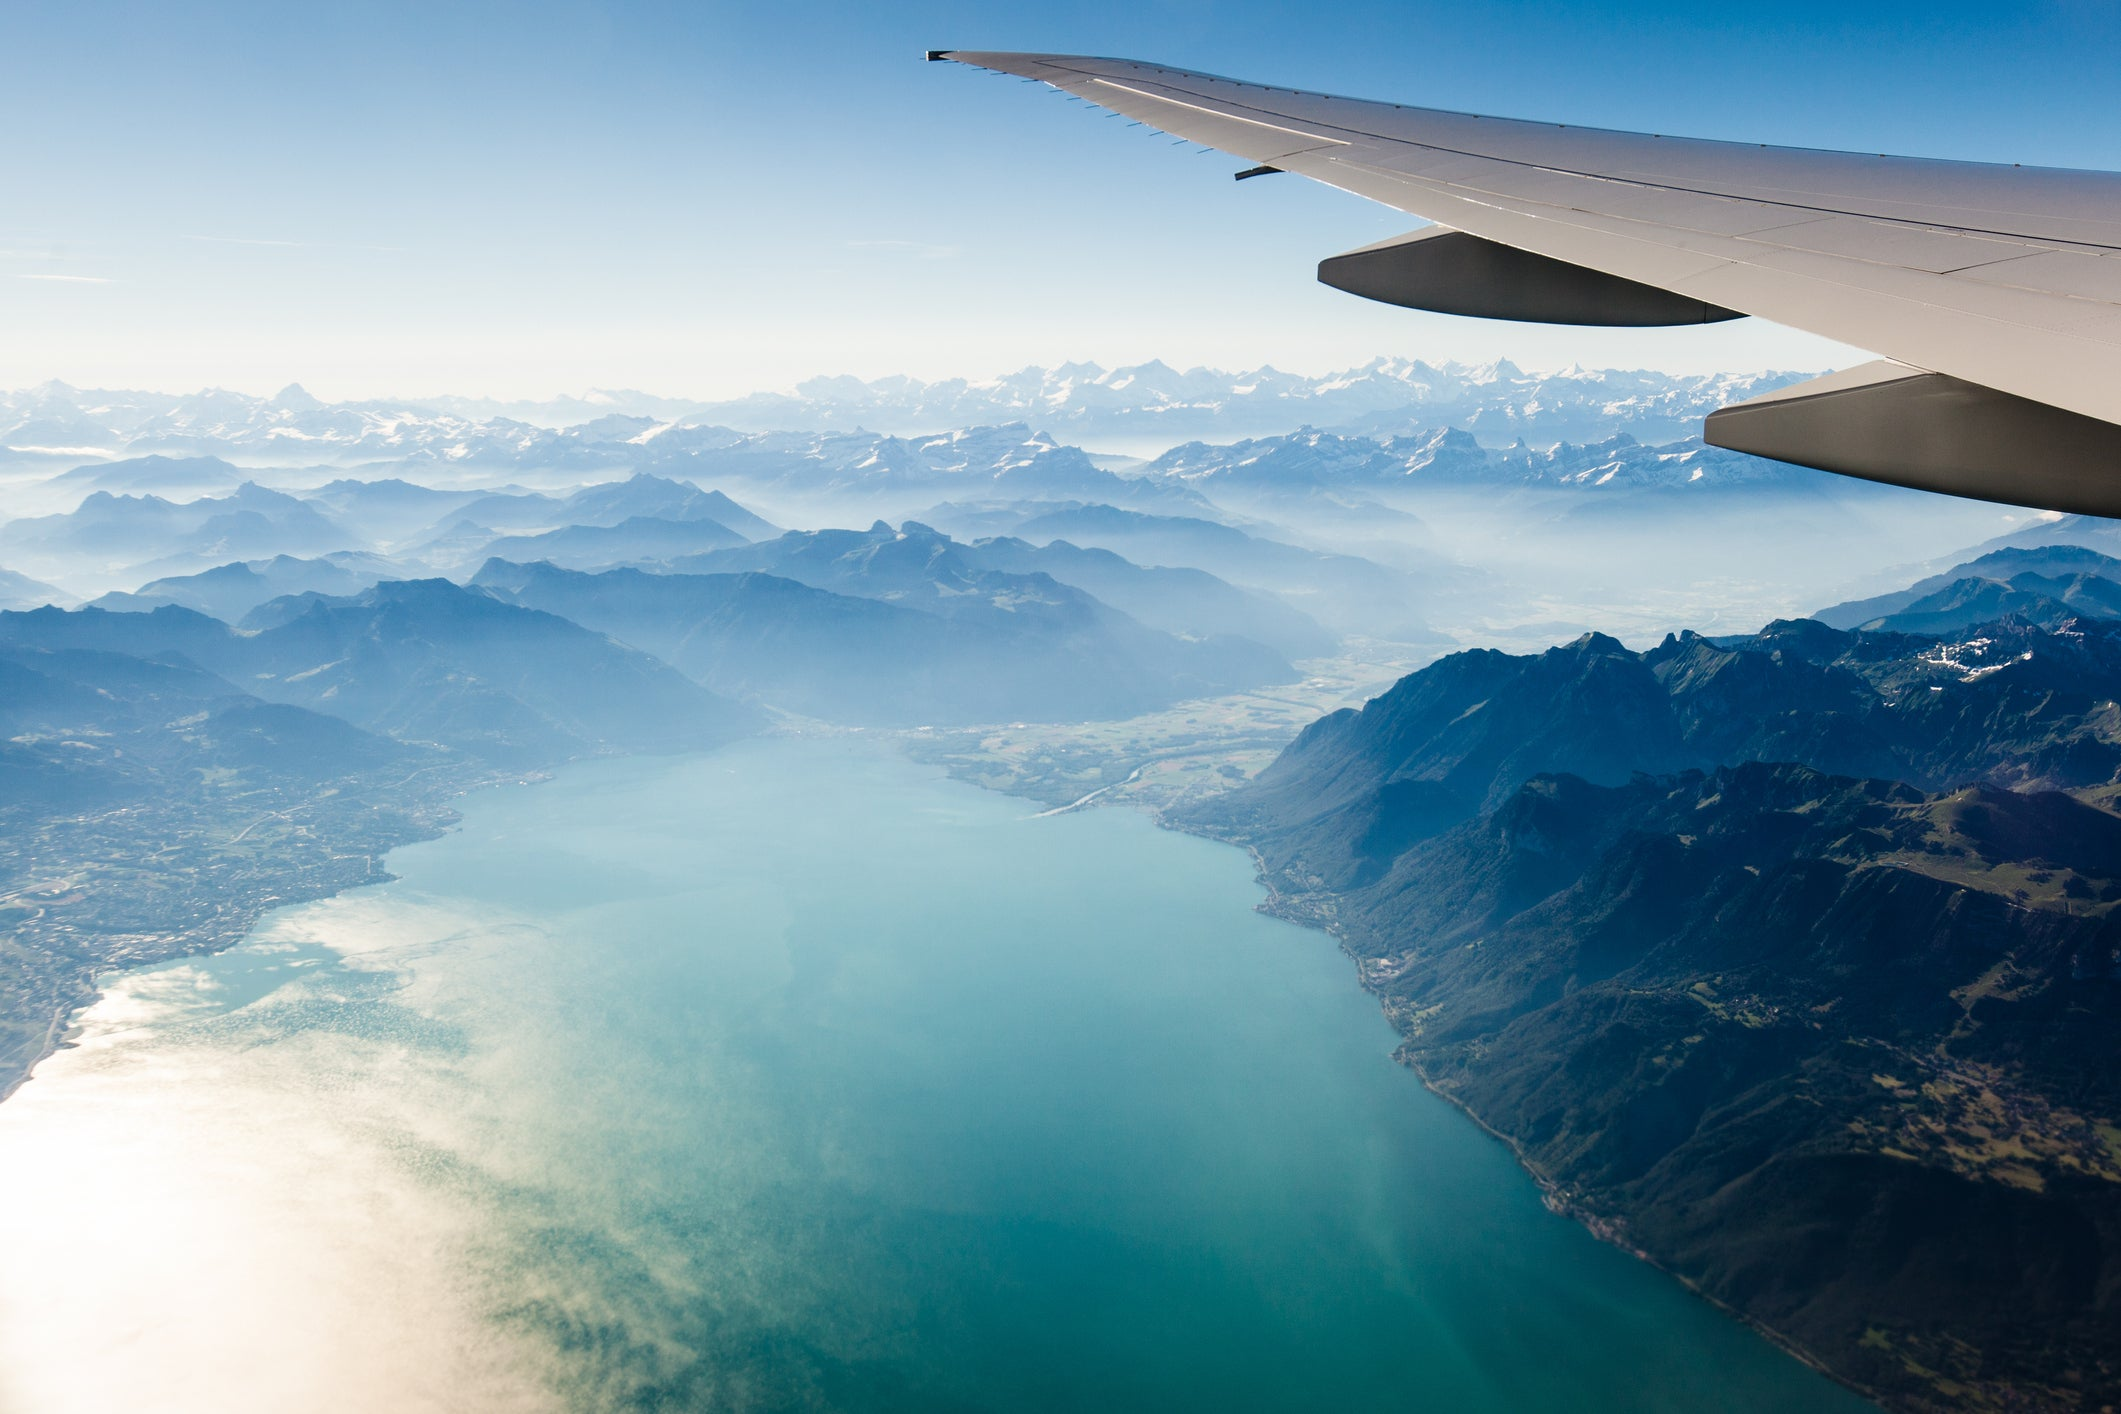 An airplane wing over a mountain scene